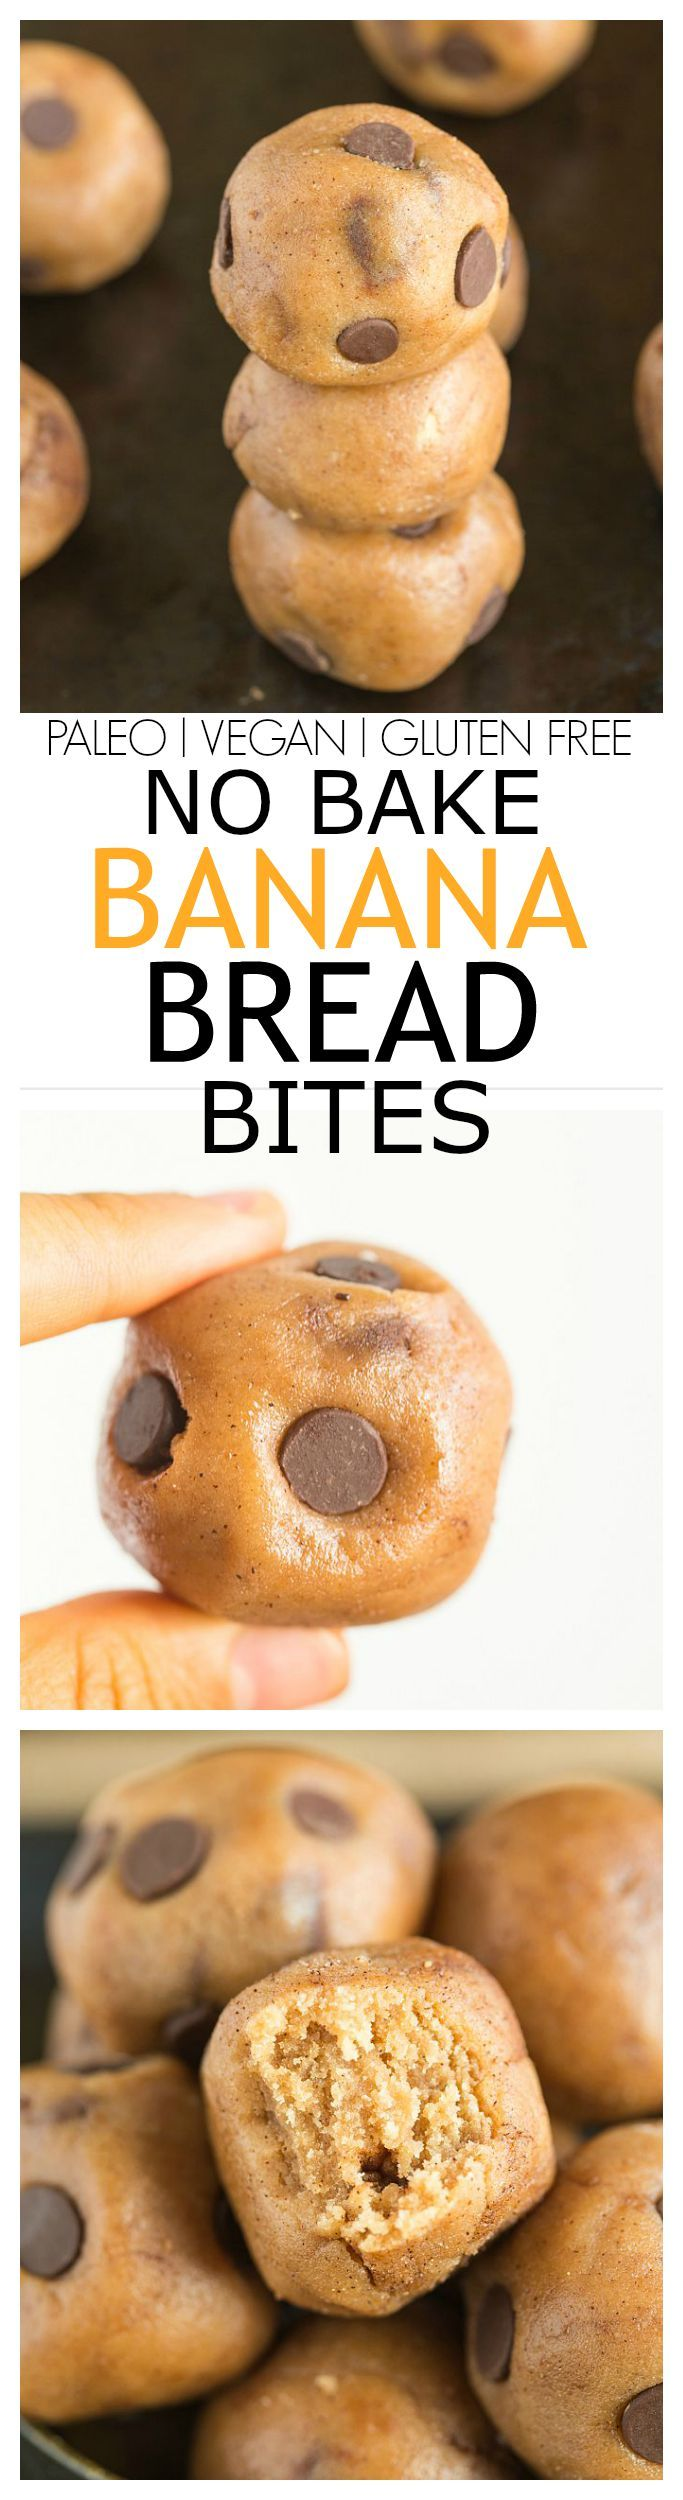 No Bake Banana Bread Bites- Delicious, healthy bites which taste JUST like banana bread without the need for baking! Quick, easy and a delicious snack! {#vegan, #glutenfree, #dairyfree, #paleo} #backtoschool #snack #lunchbox #dormcooking #college